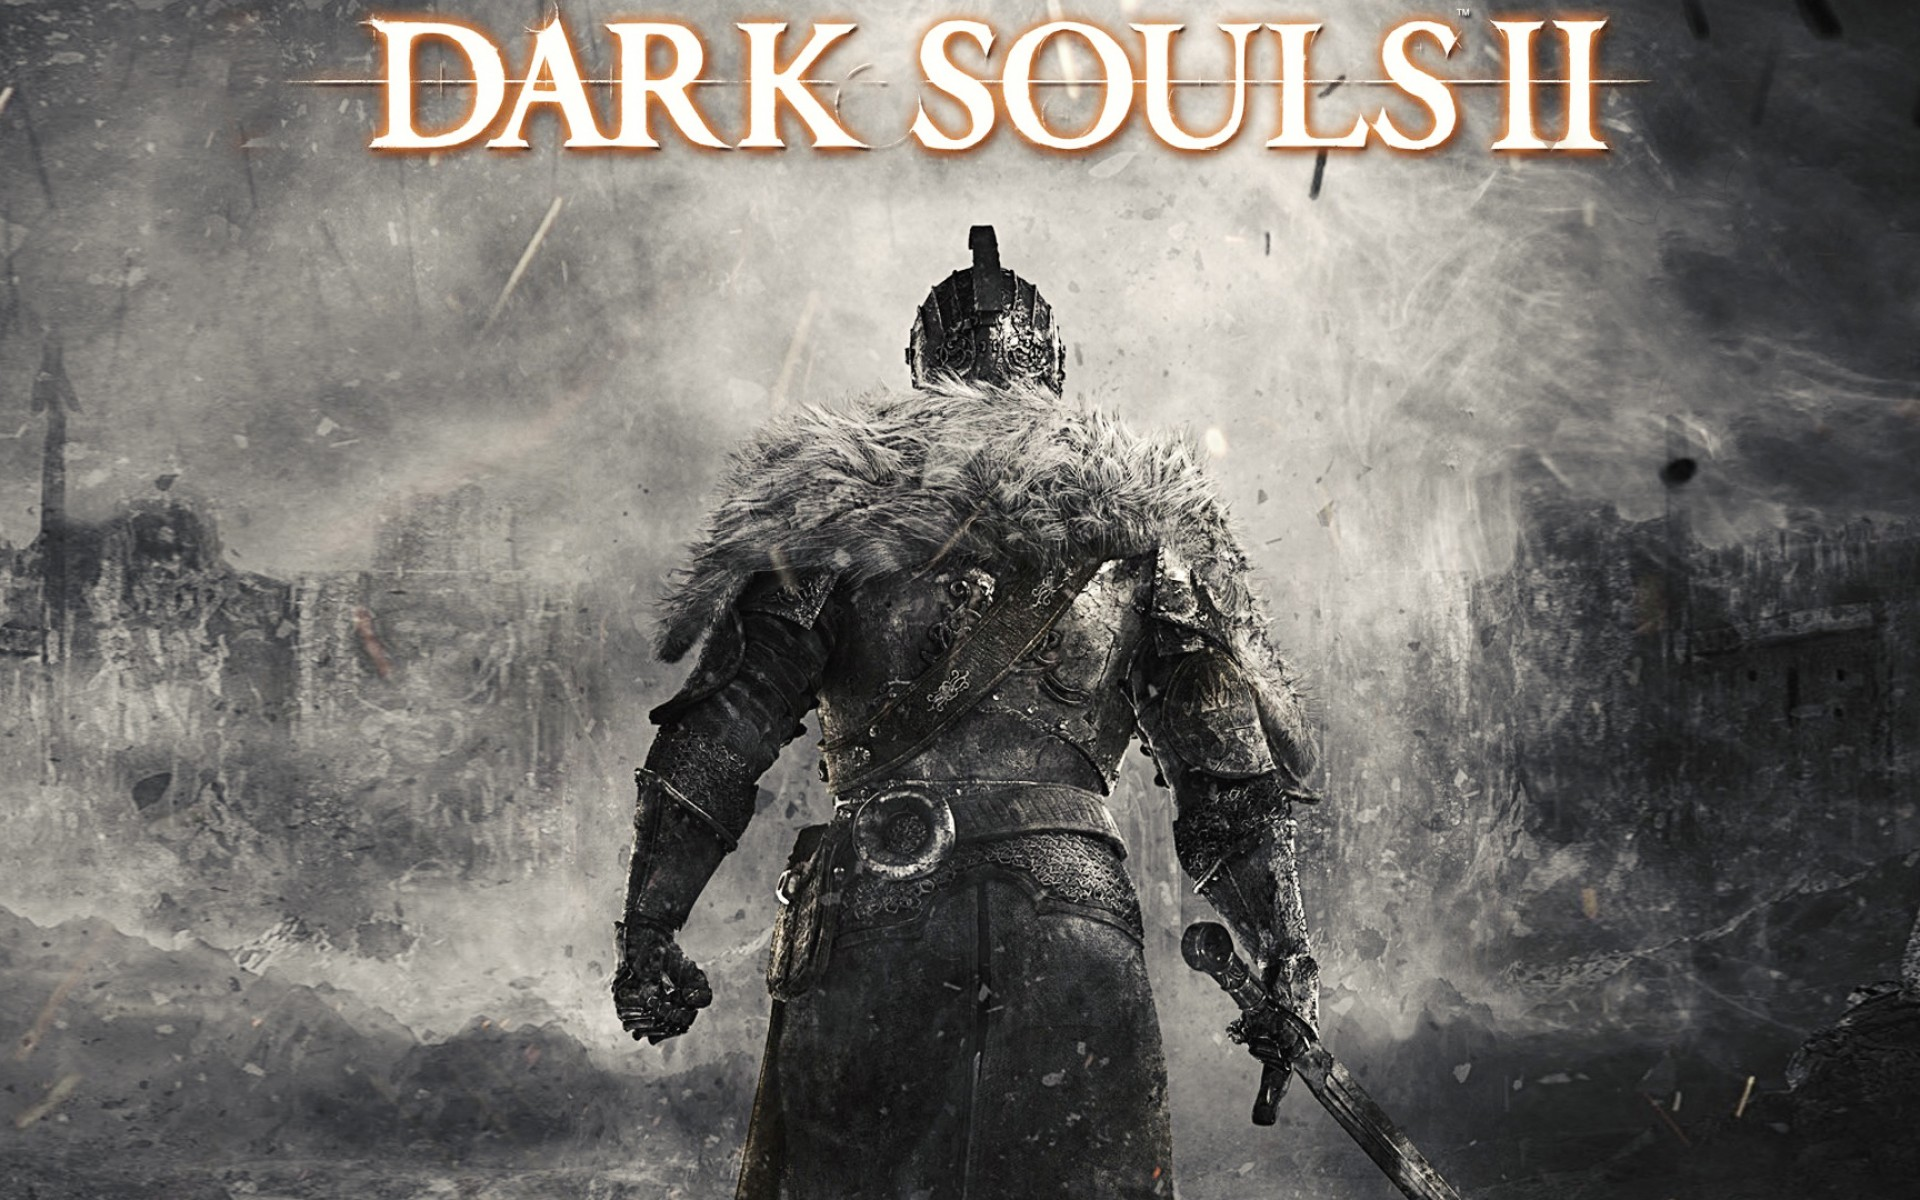 Dark Souls II is the third installment in the tough as nails Souls series of games. With visceral combat and a mysterious sprawling world to explore, ...